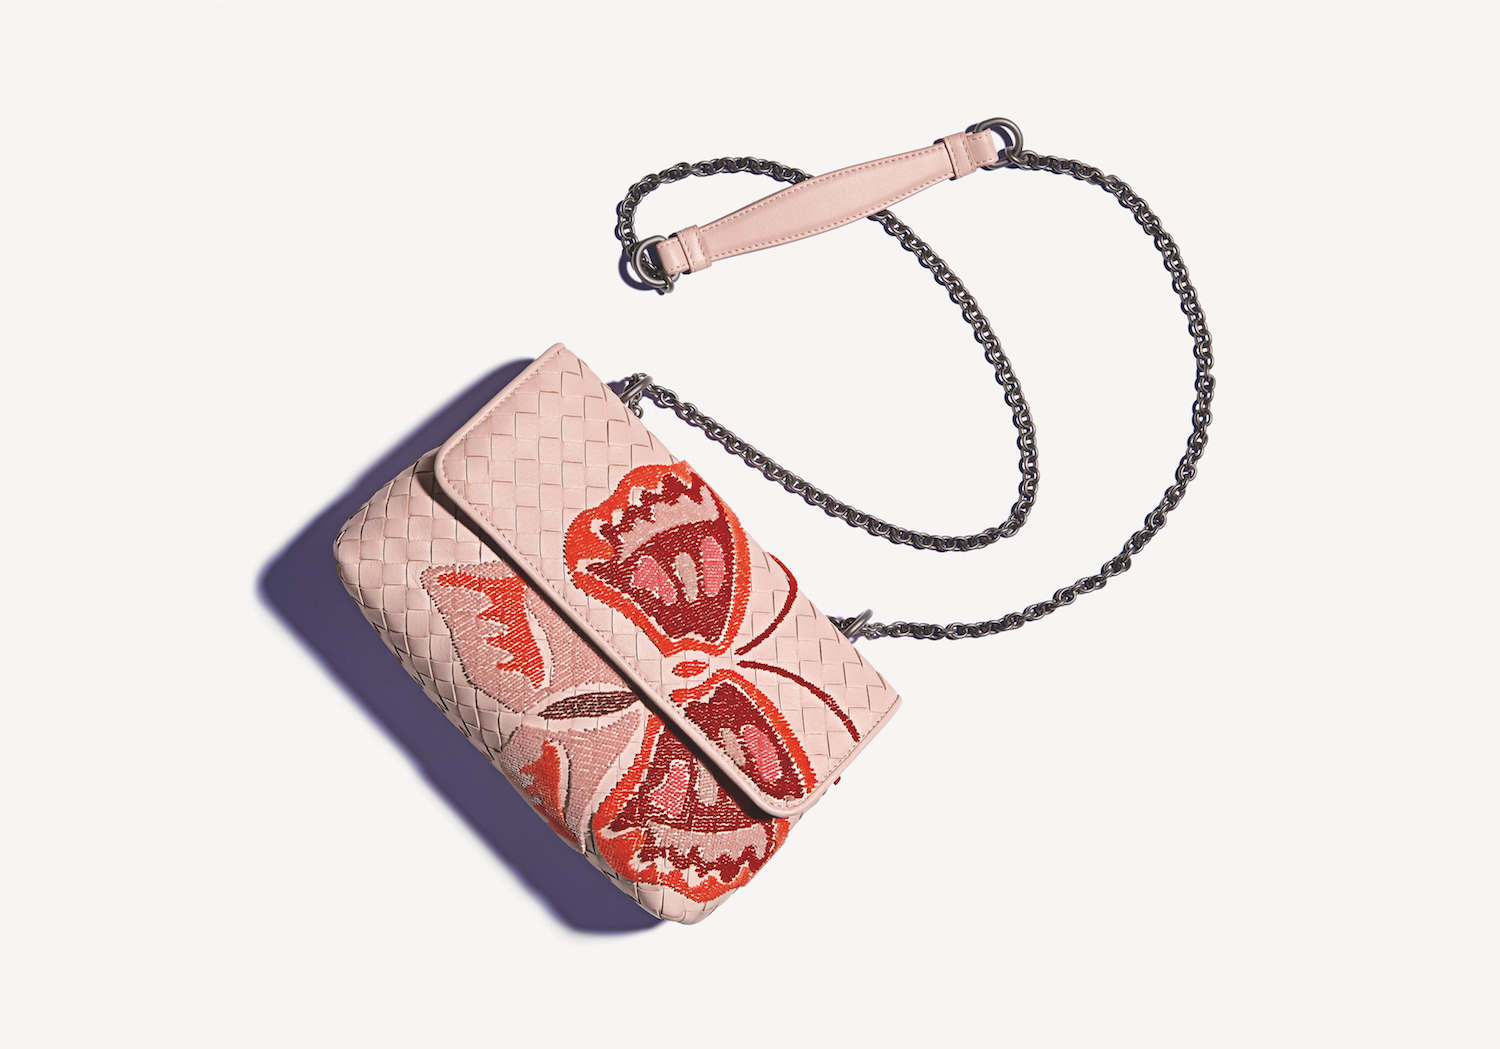 Bottega Veneta launches an Asia-exclusive Butterfly collection